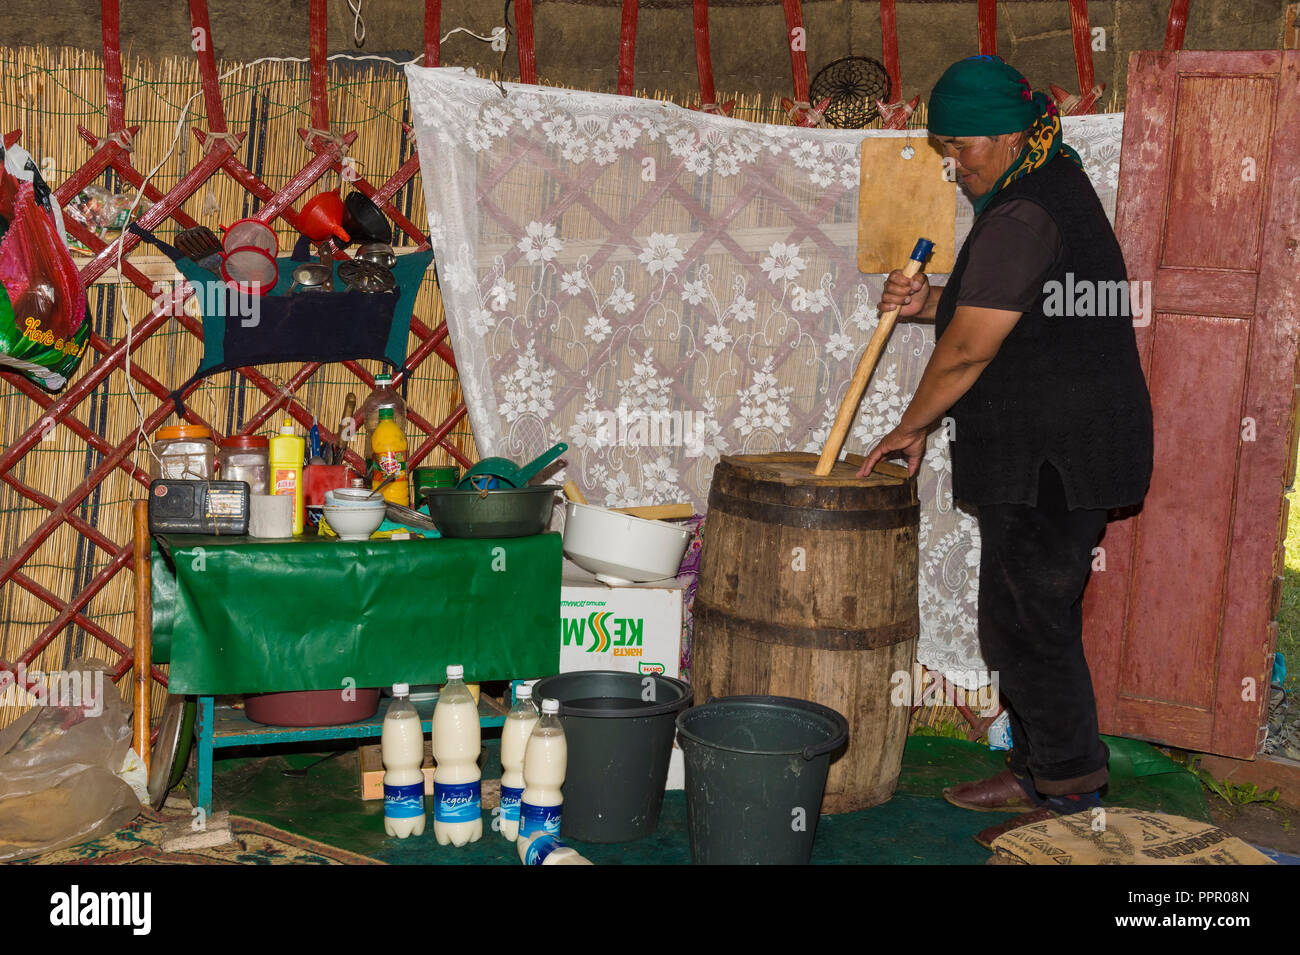 Kyrgyz Woman Stock Photos & Kyrgyz Woman Stock Images - Alamy